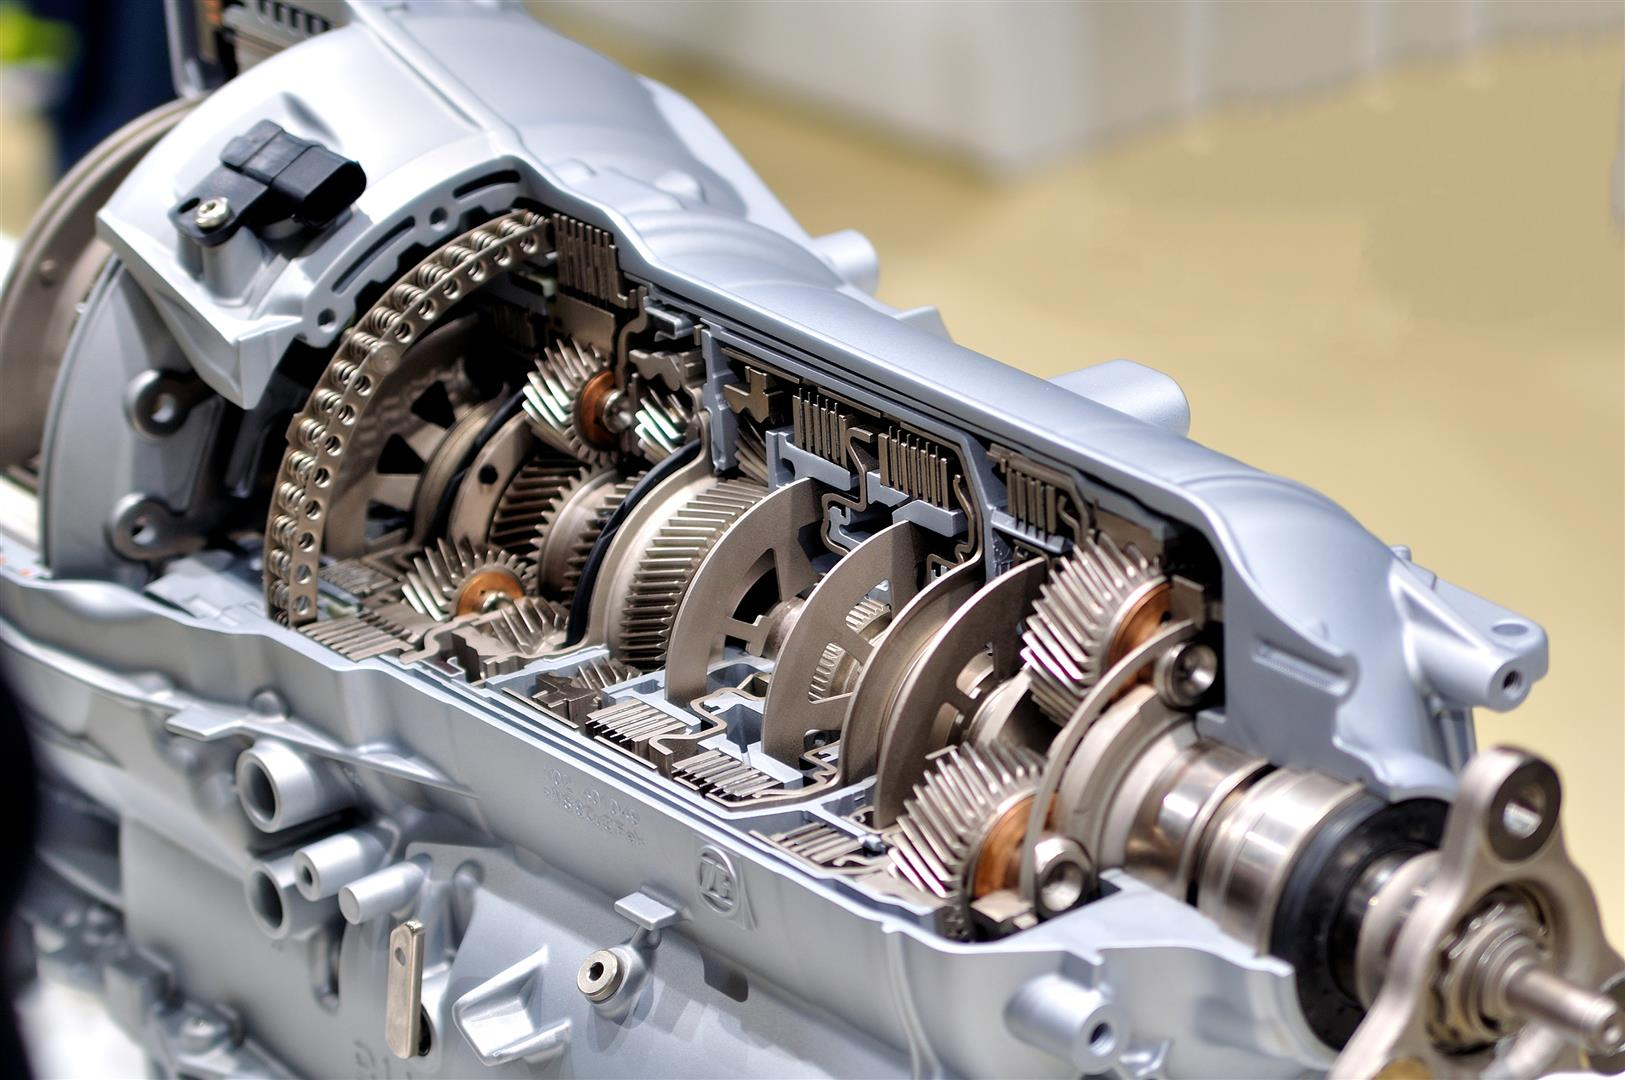 Have you had your Transmission Serviced recently?